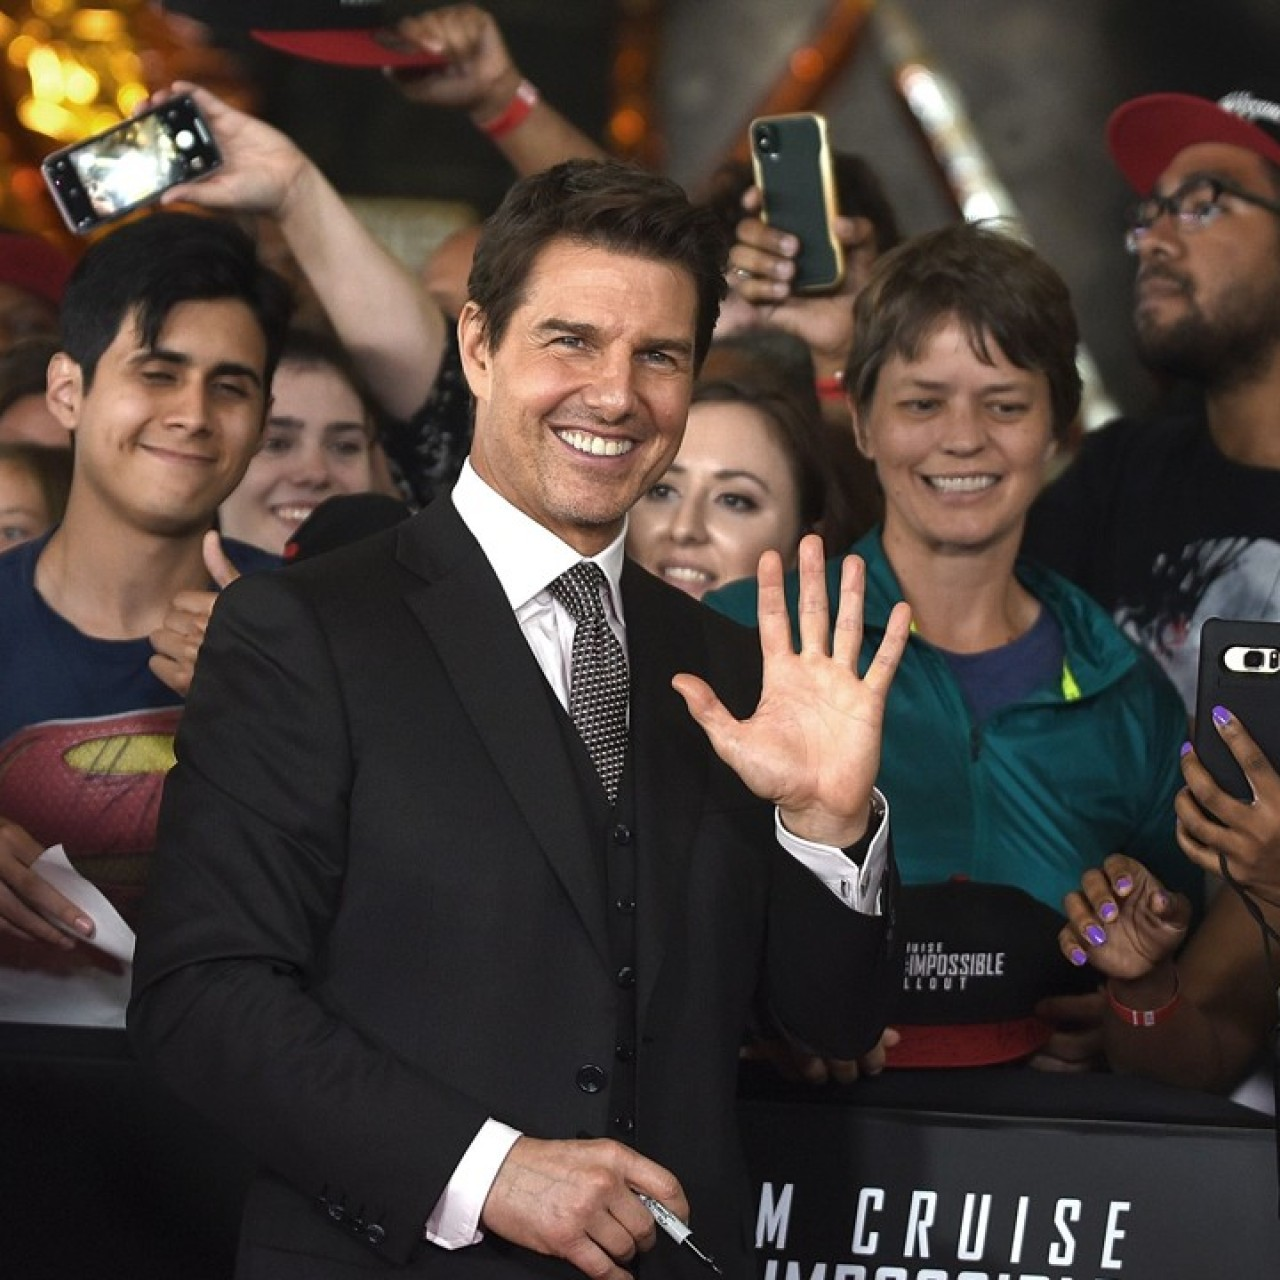 Mission Impossible 6 premiere red carpet gossip: Tom Cruise's ankle